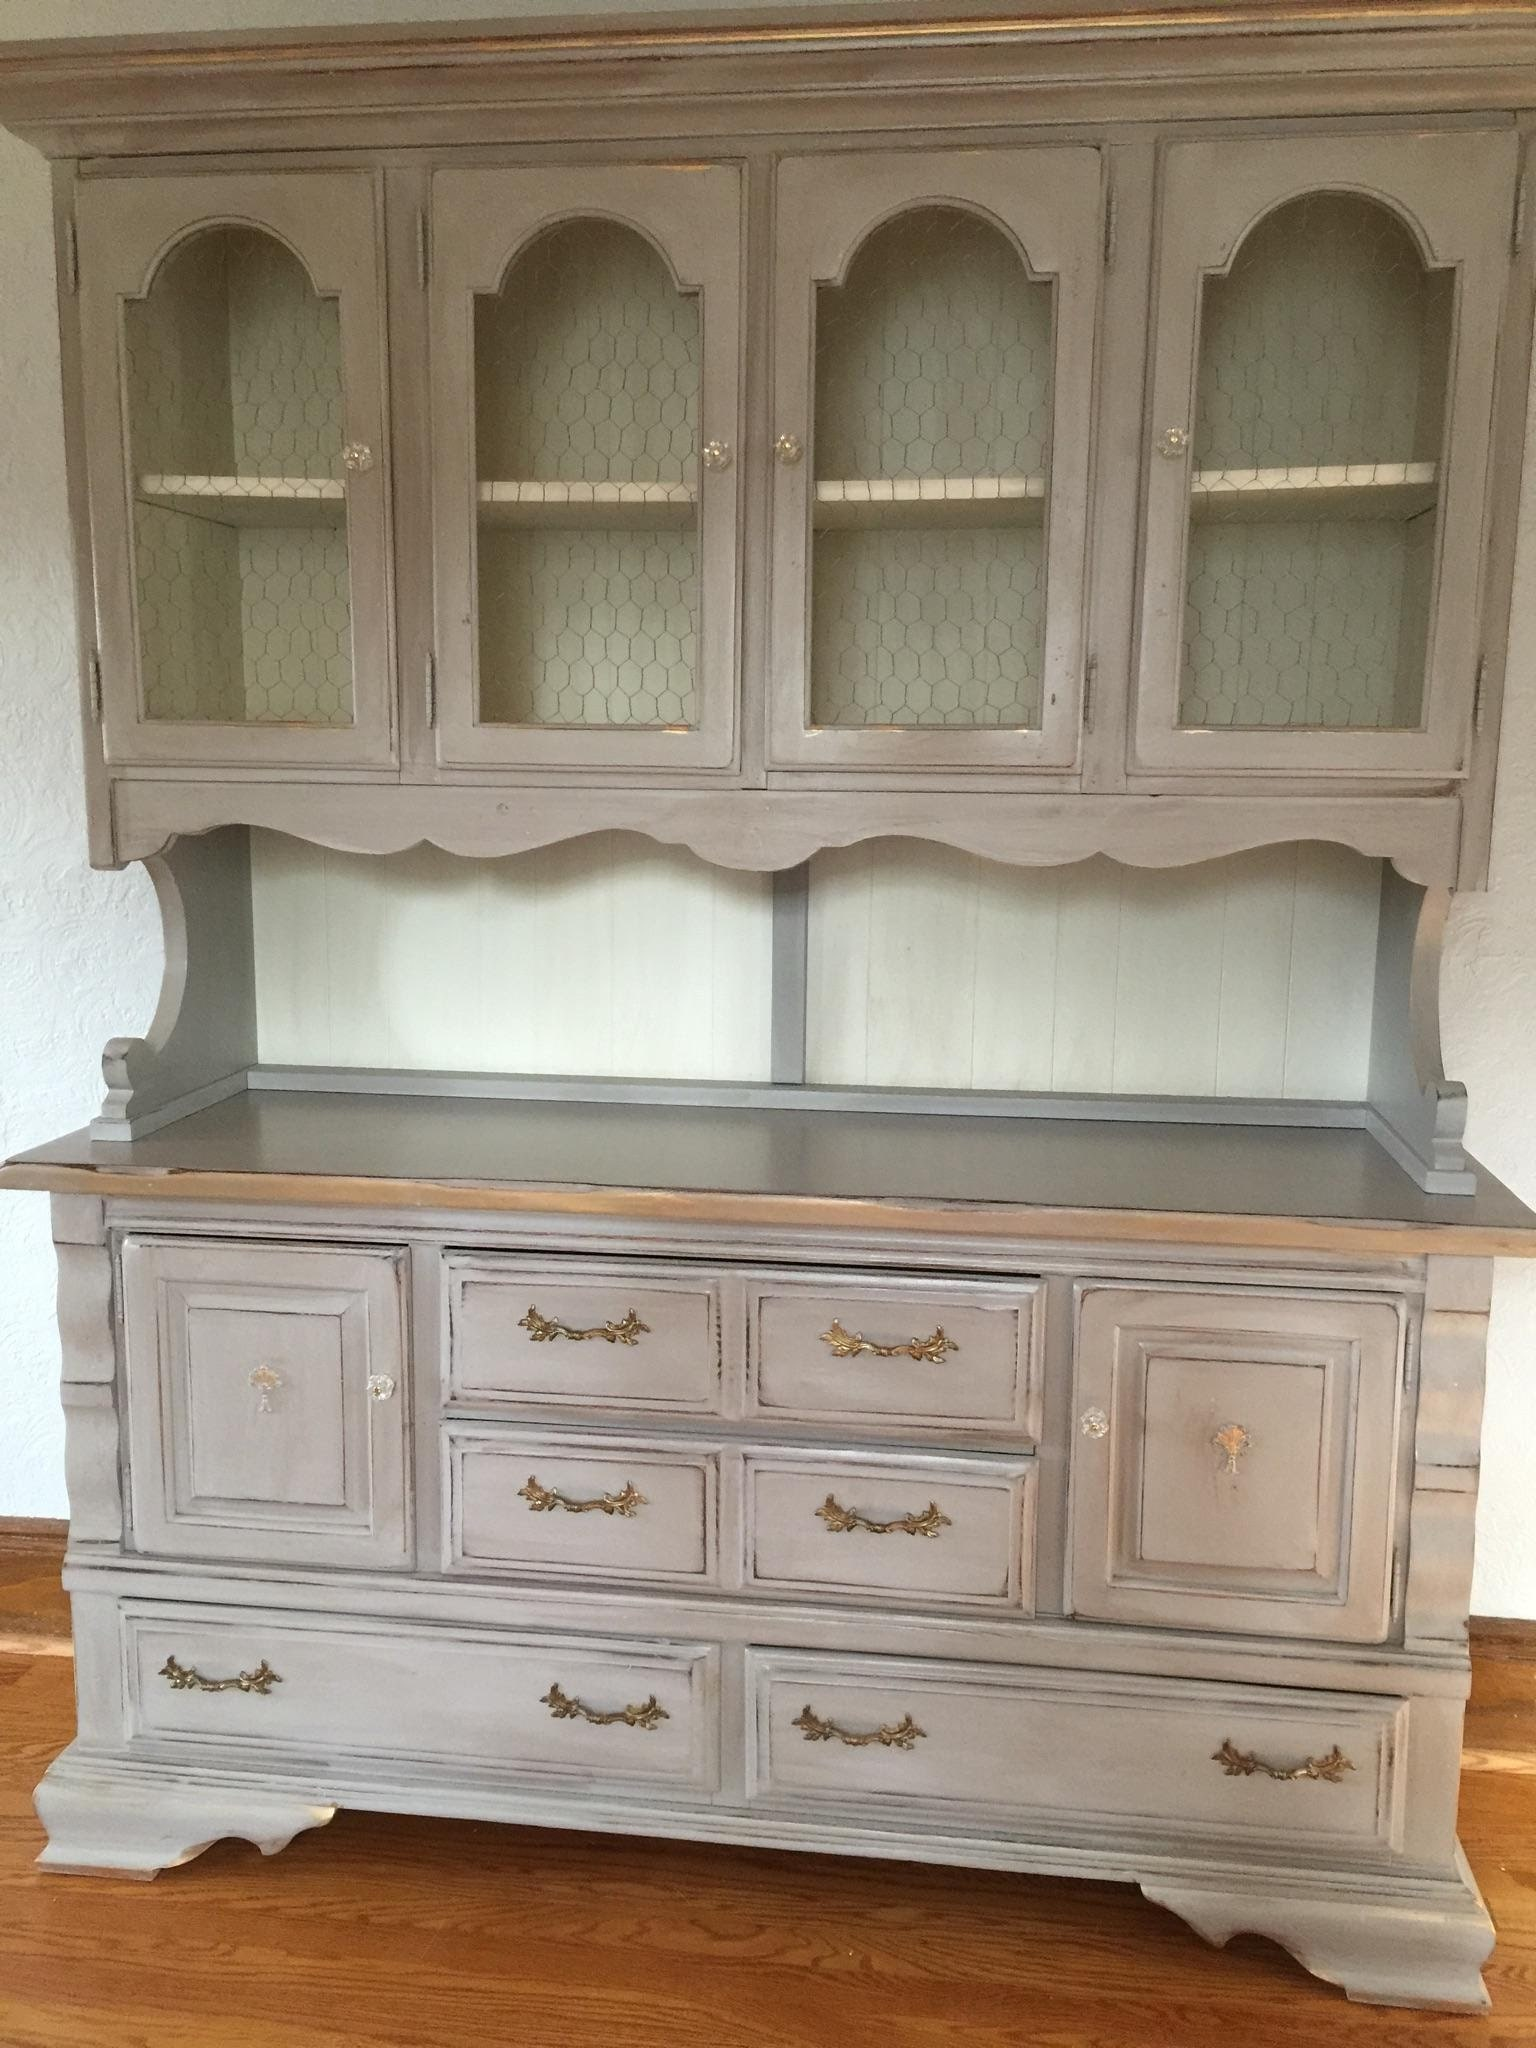 Vintage Painted China Cabinet, Pantry, Hutch, Breakfront, Storage, Shabby  Chic,